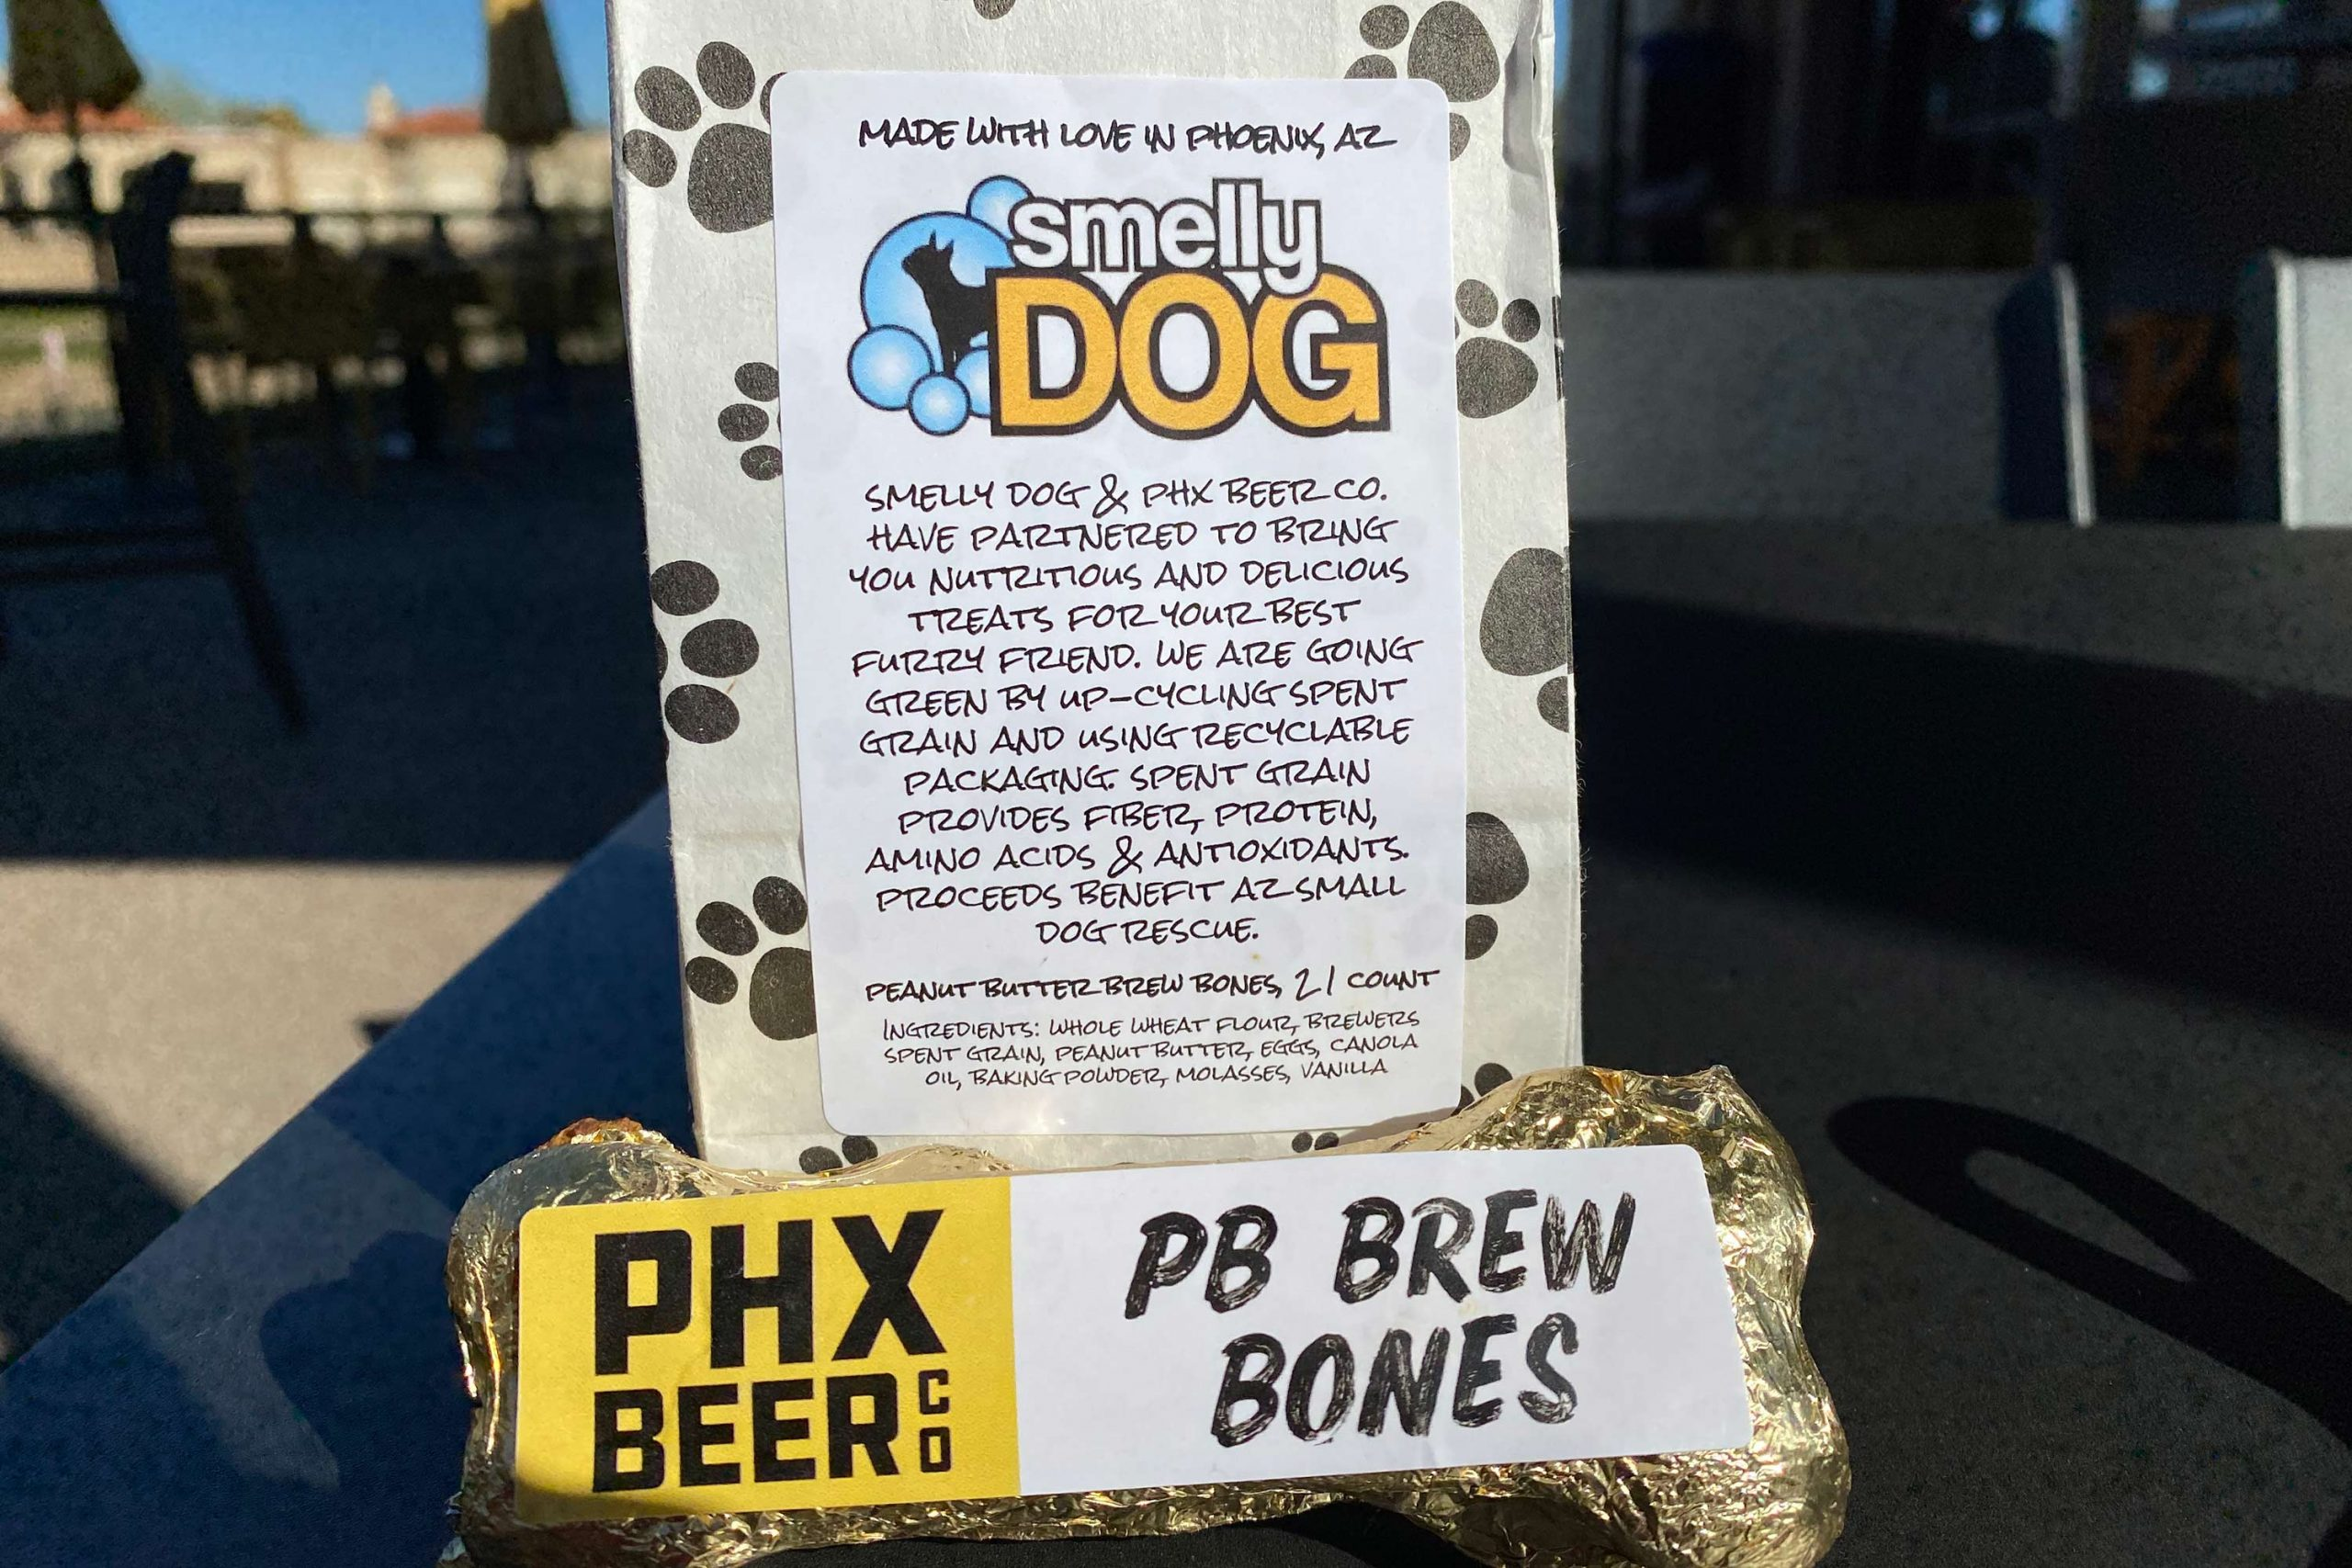 PB Brew Bones are sold as a single 3oz size as well as a pack of 18 bones with a portion of proceeds from the purchase going to Arizona Small Dog Rescue.